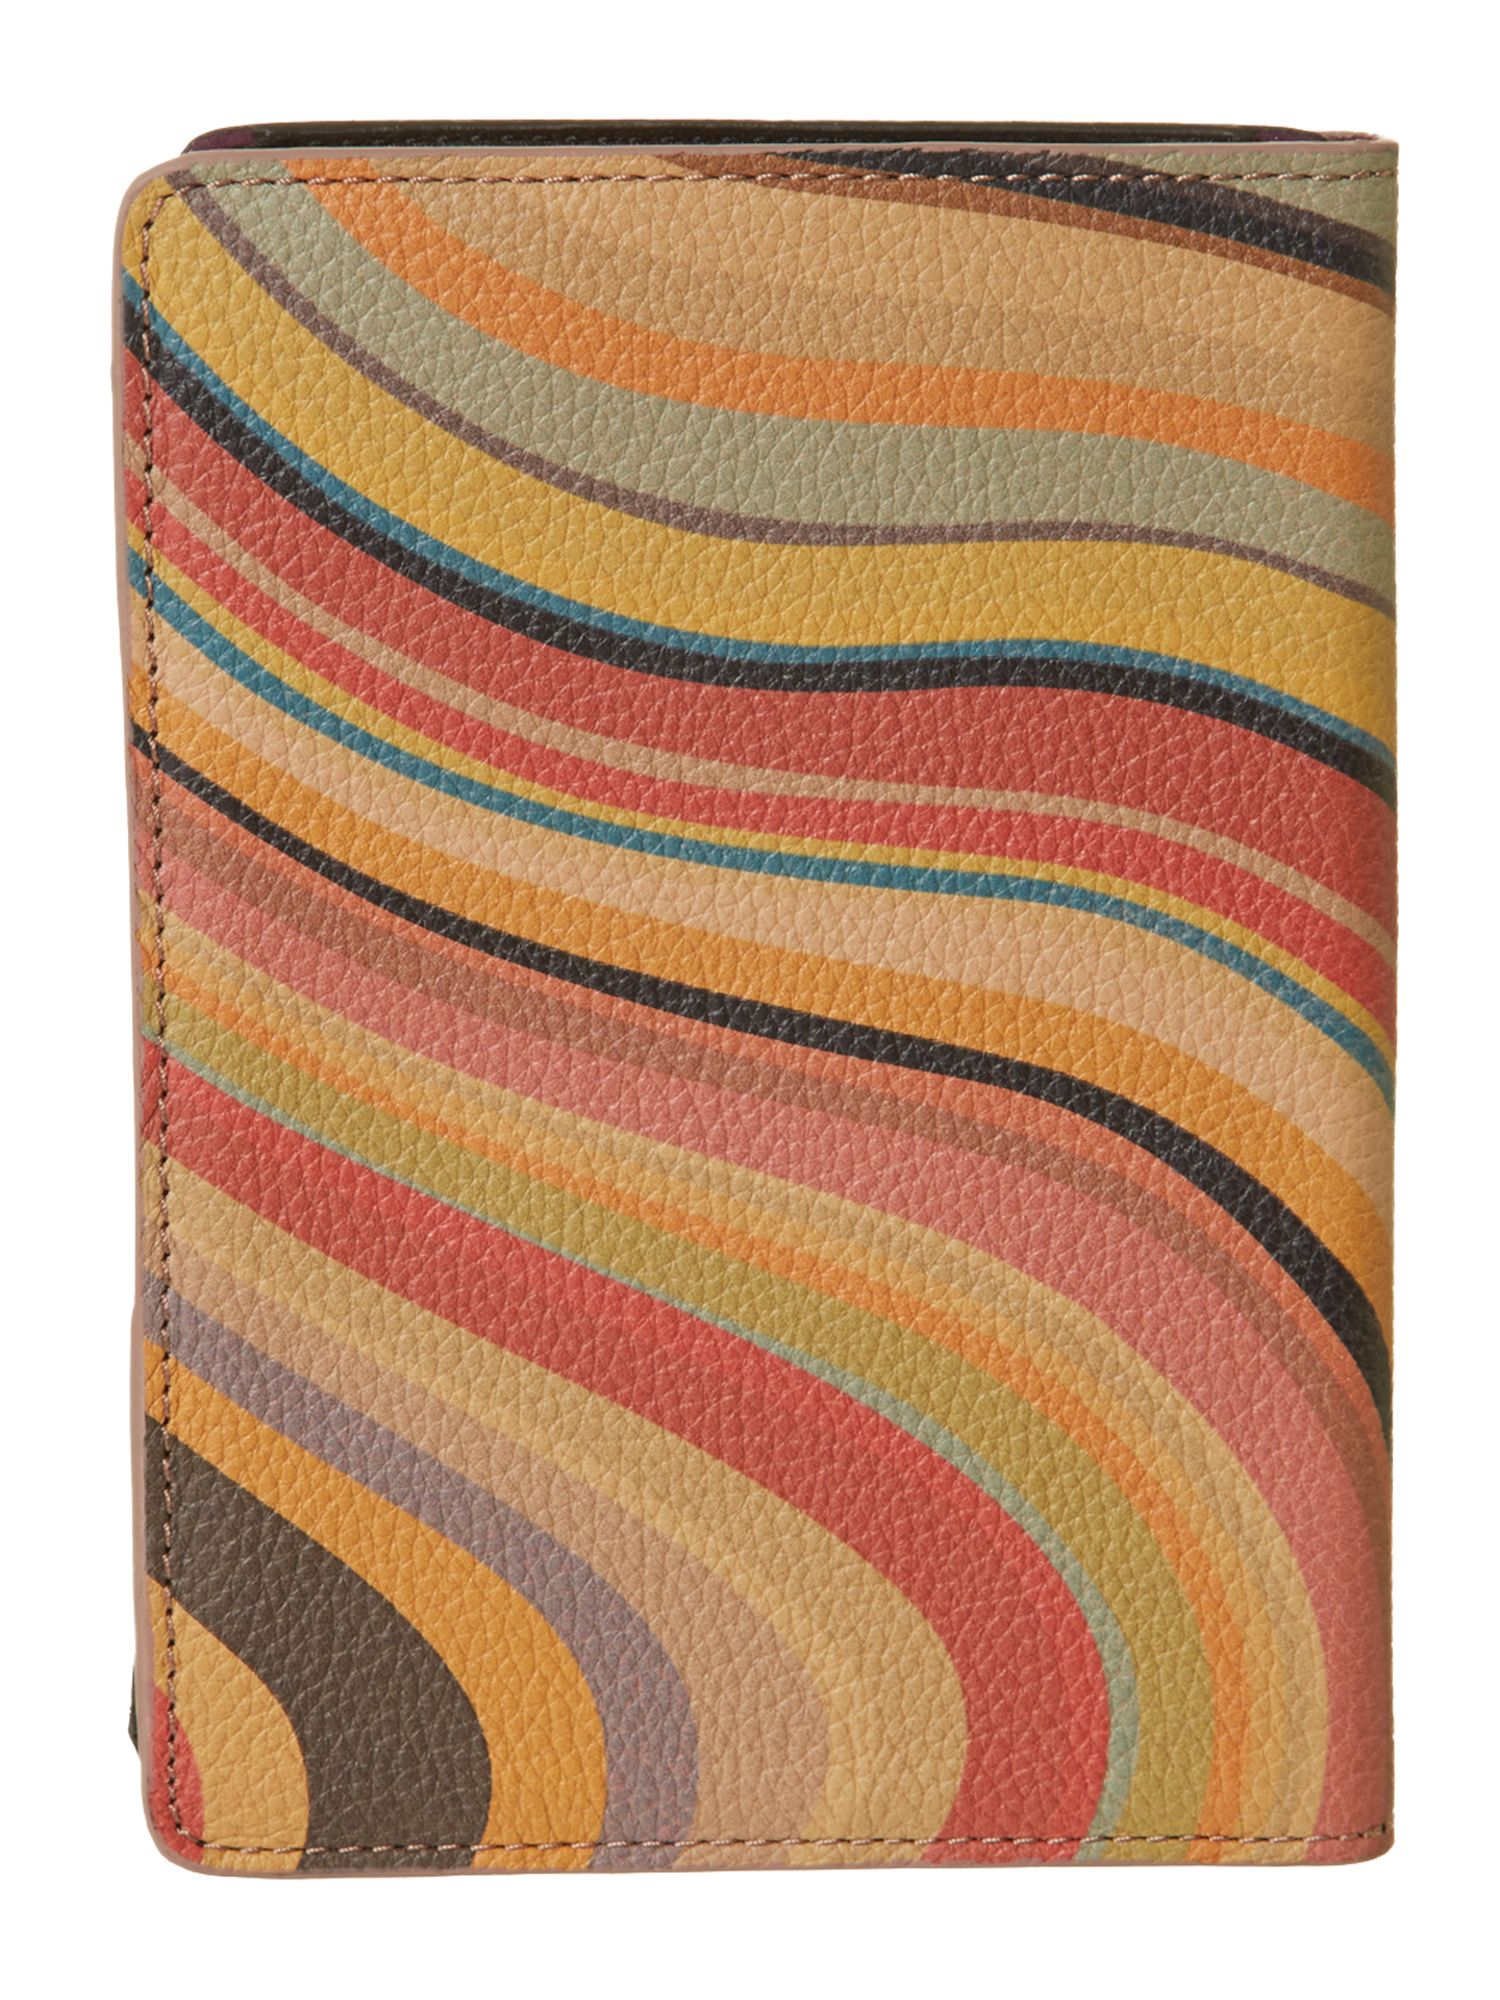 Swirl print kindle cover